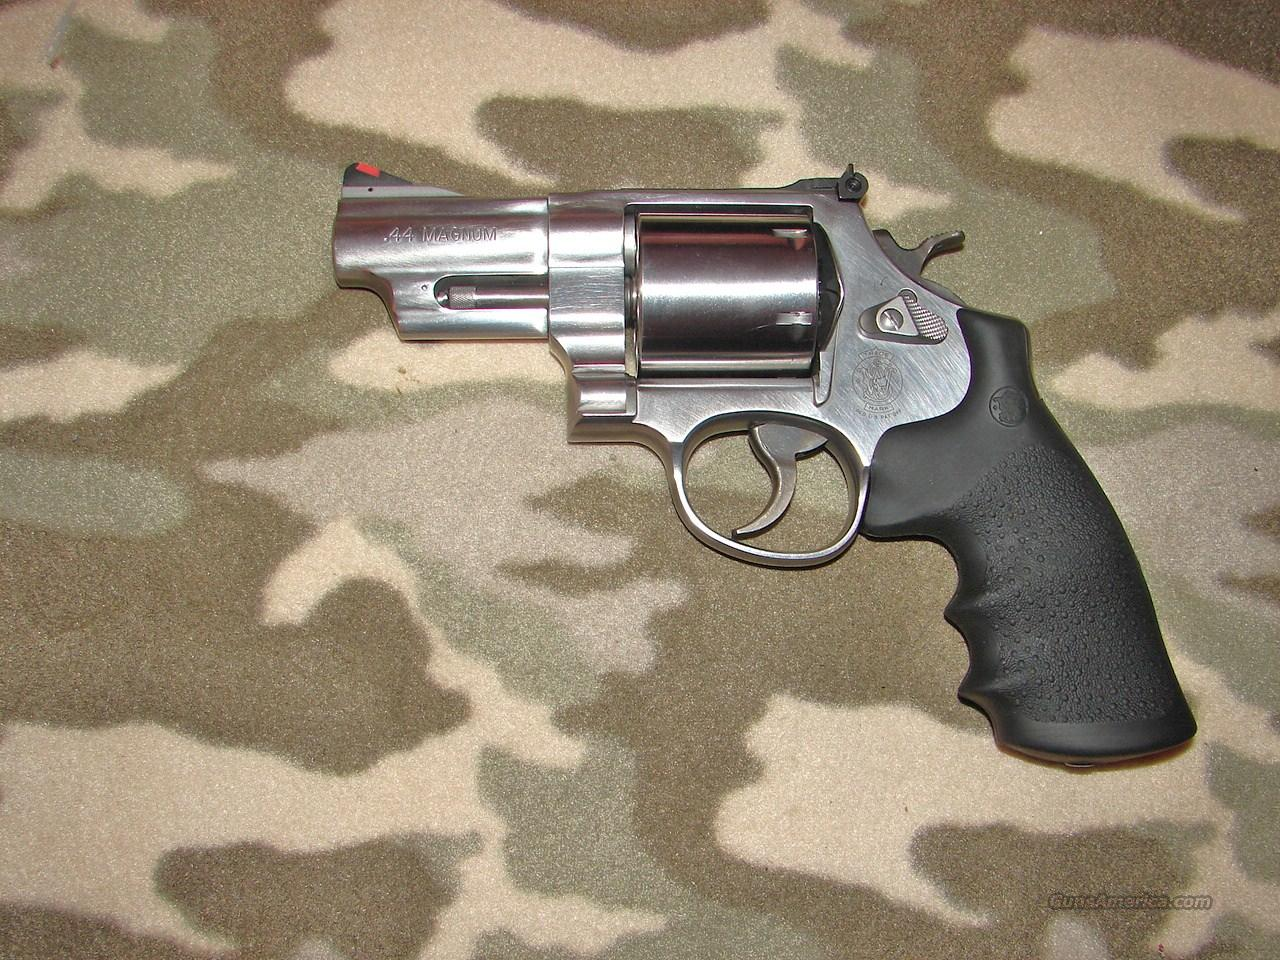 Smith & Wesson 629-3  Guns > Pistols > Smith & Wesson Revolvers > Model 629